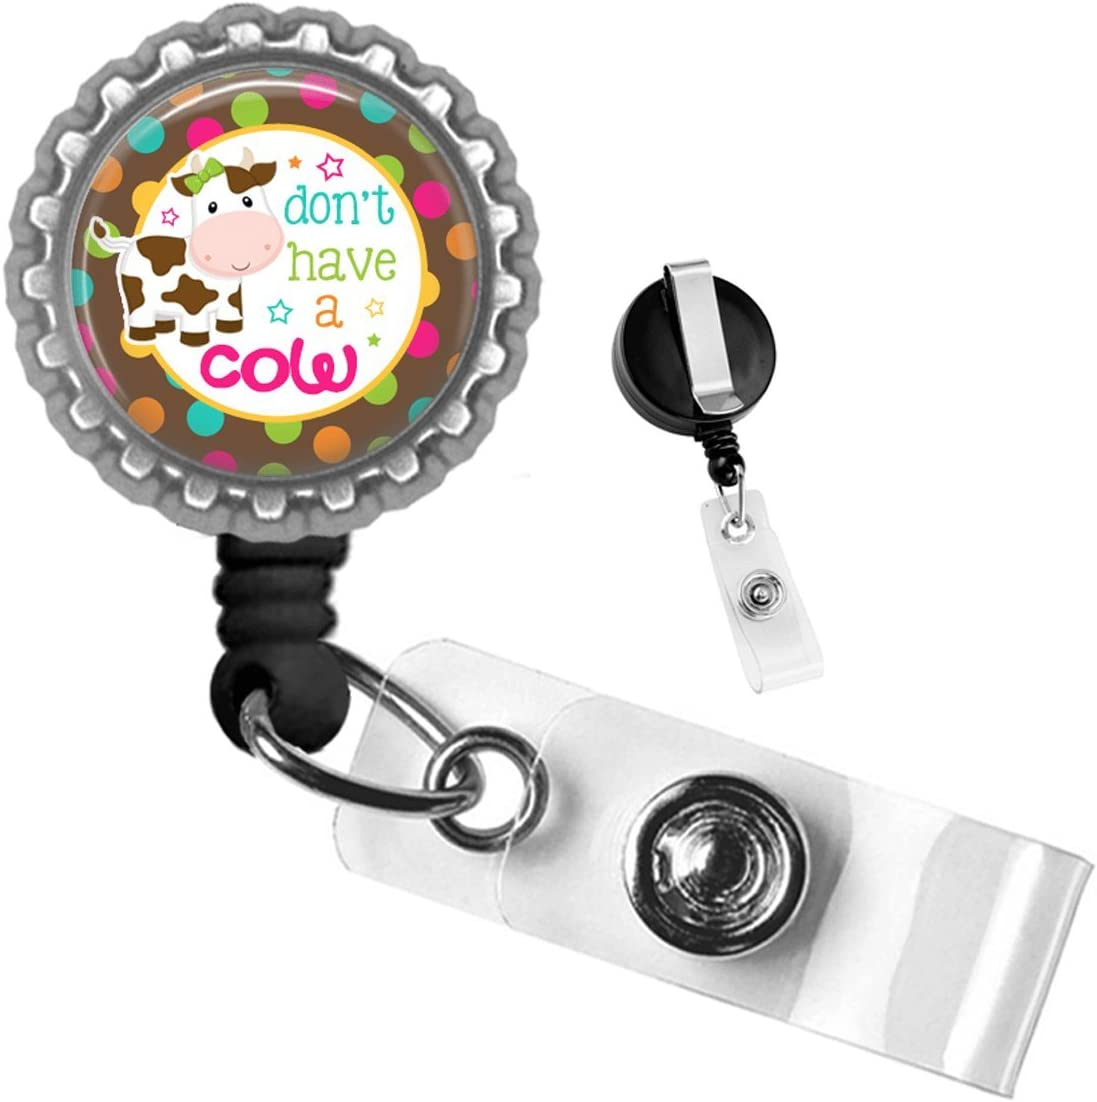 Farm Don't Have a Cow Polka Dot Silver Retractable ID Tag Badge Reel by Geek Badges